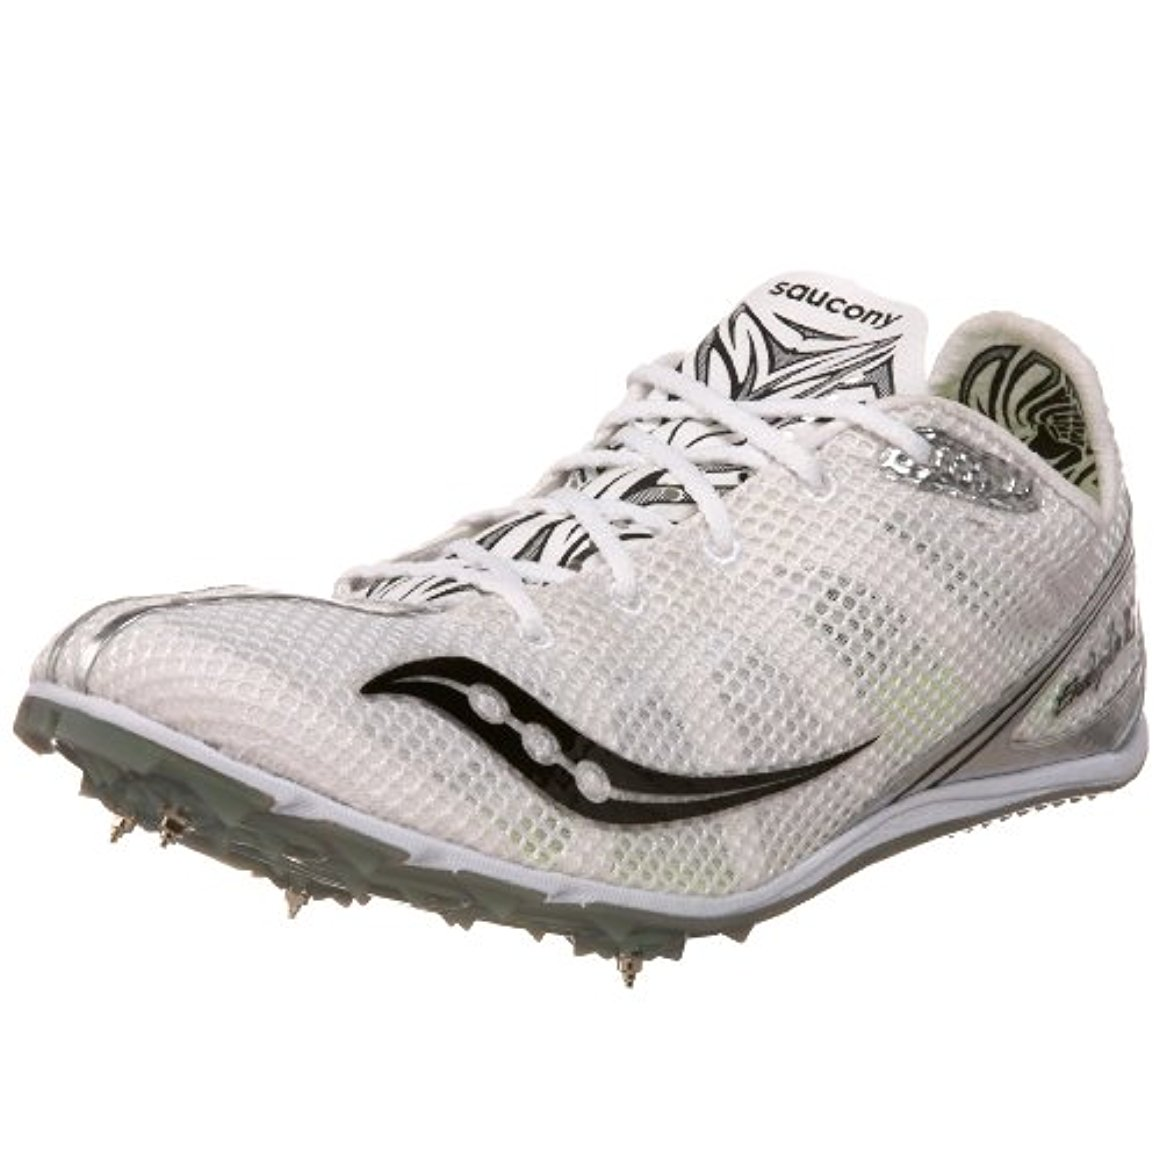 Saucony Men's Endorphin Spike Ld2 Track Spike,11.5 M US,White/Silver/Green